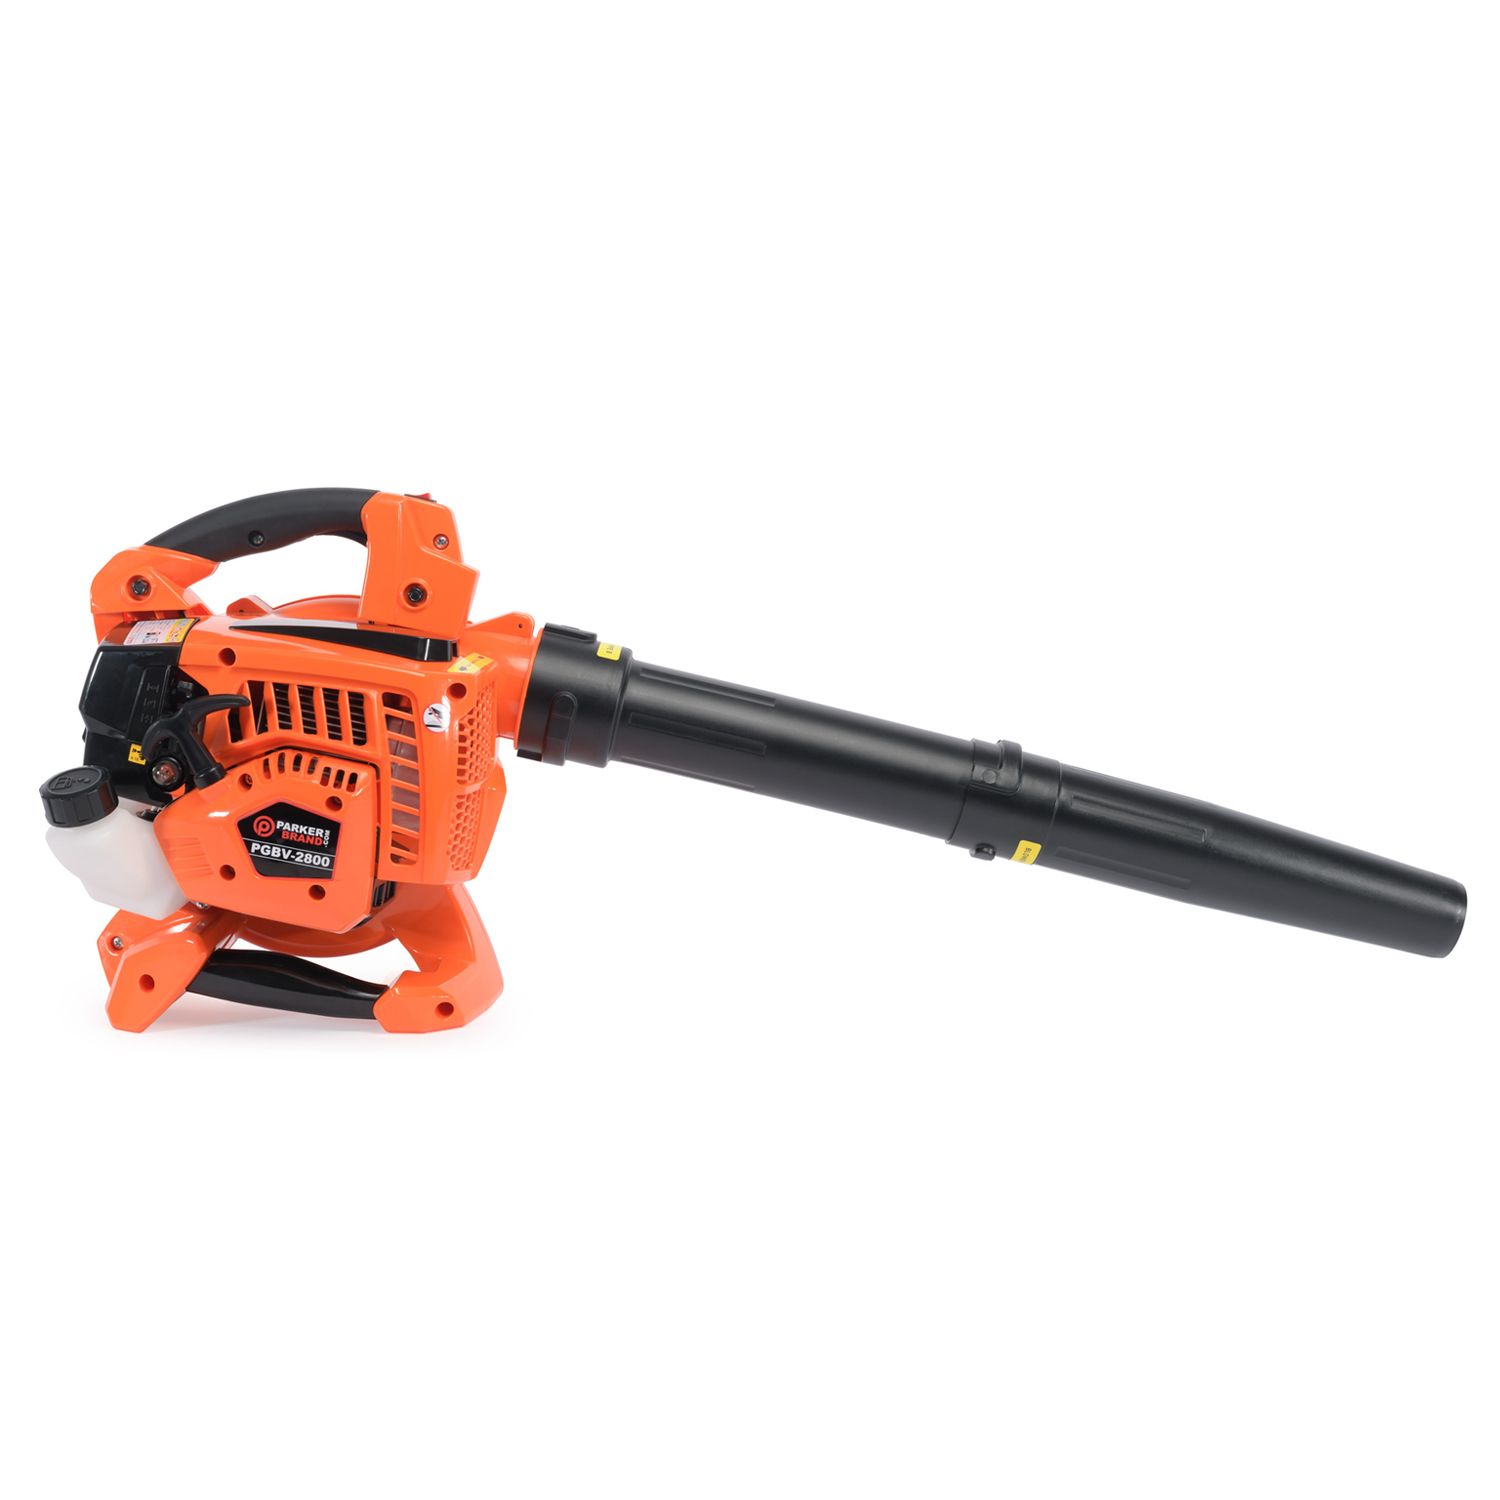 Introducing Our NEW 28-CC 3-in-1 Leaf Blower